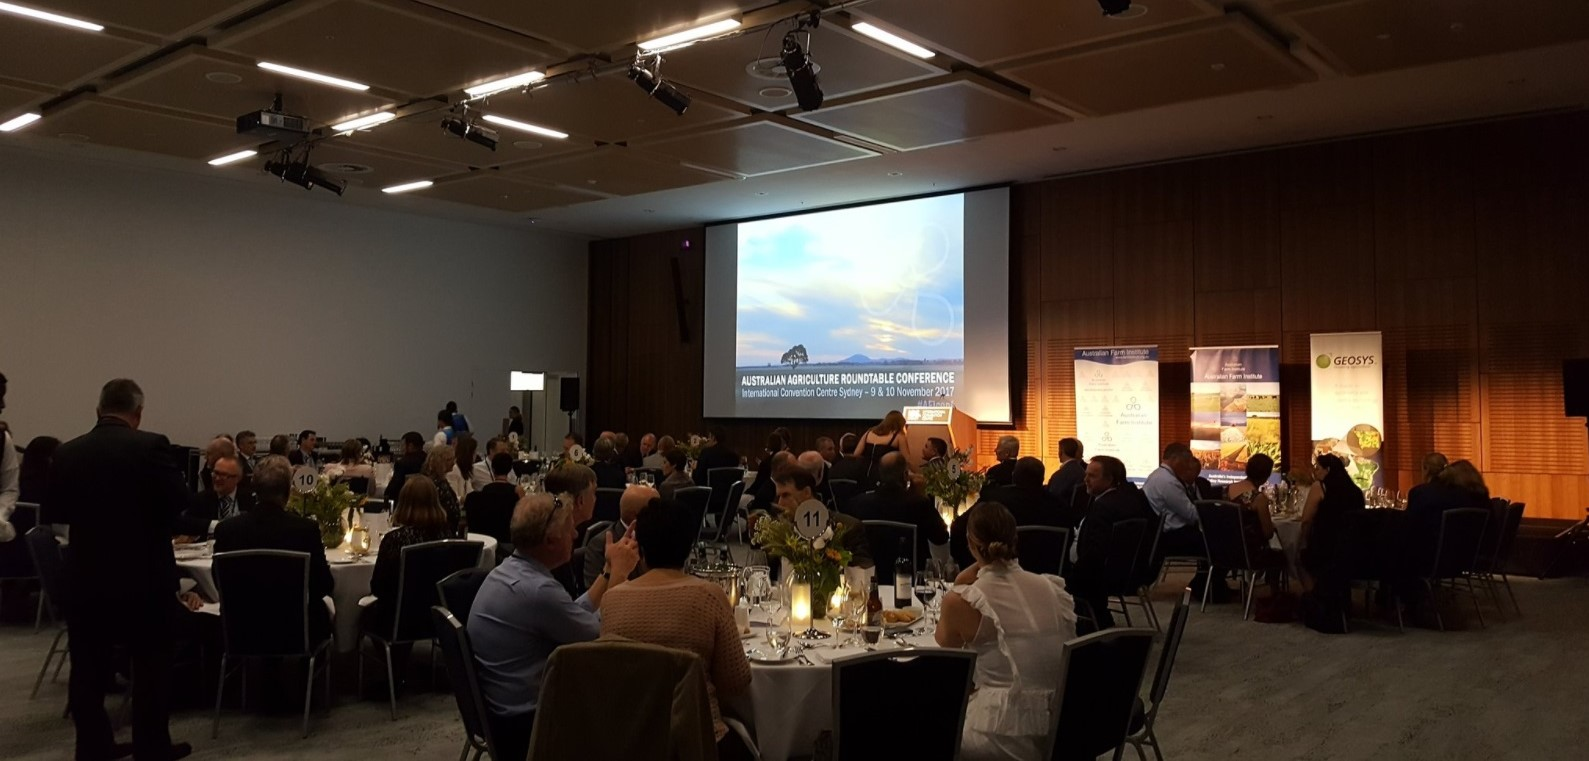 Global industry leaders converge at Australian Agriculture Roundtable Conference